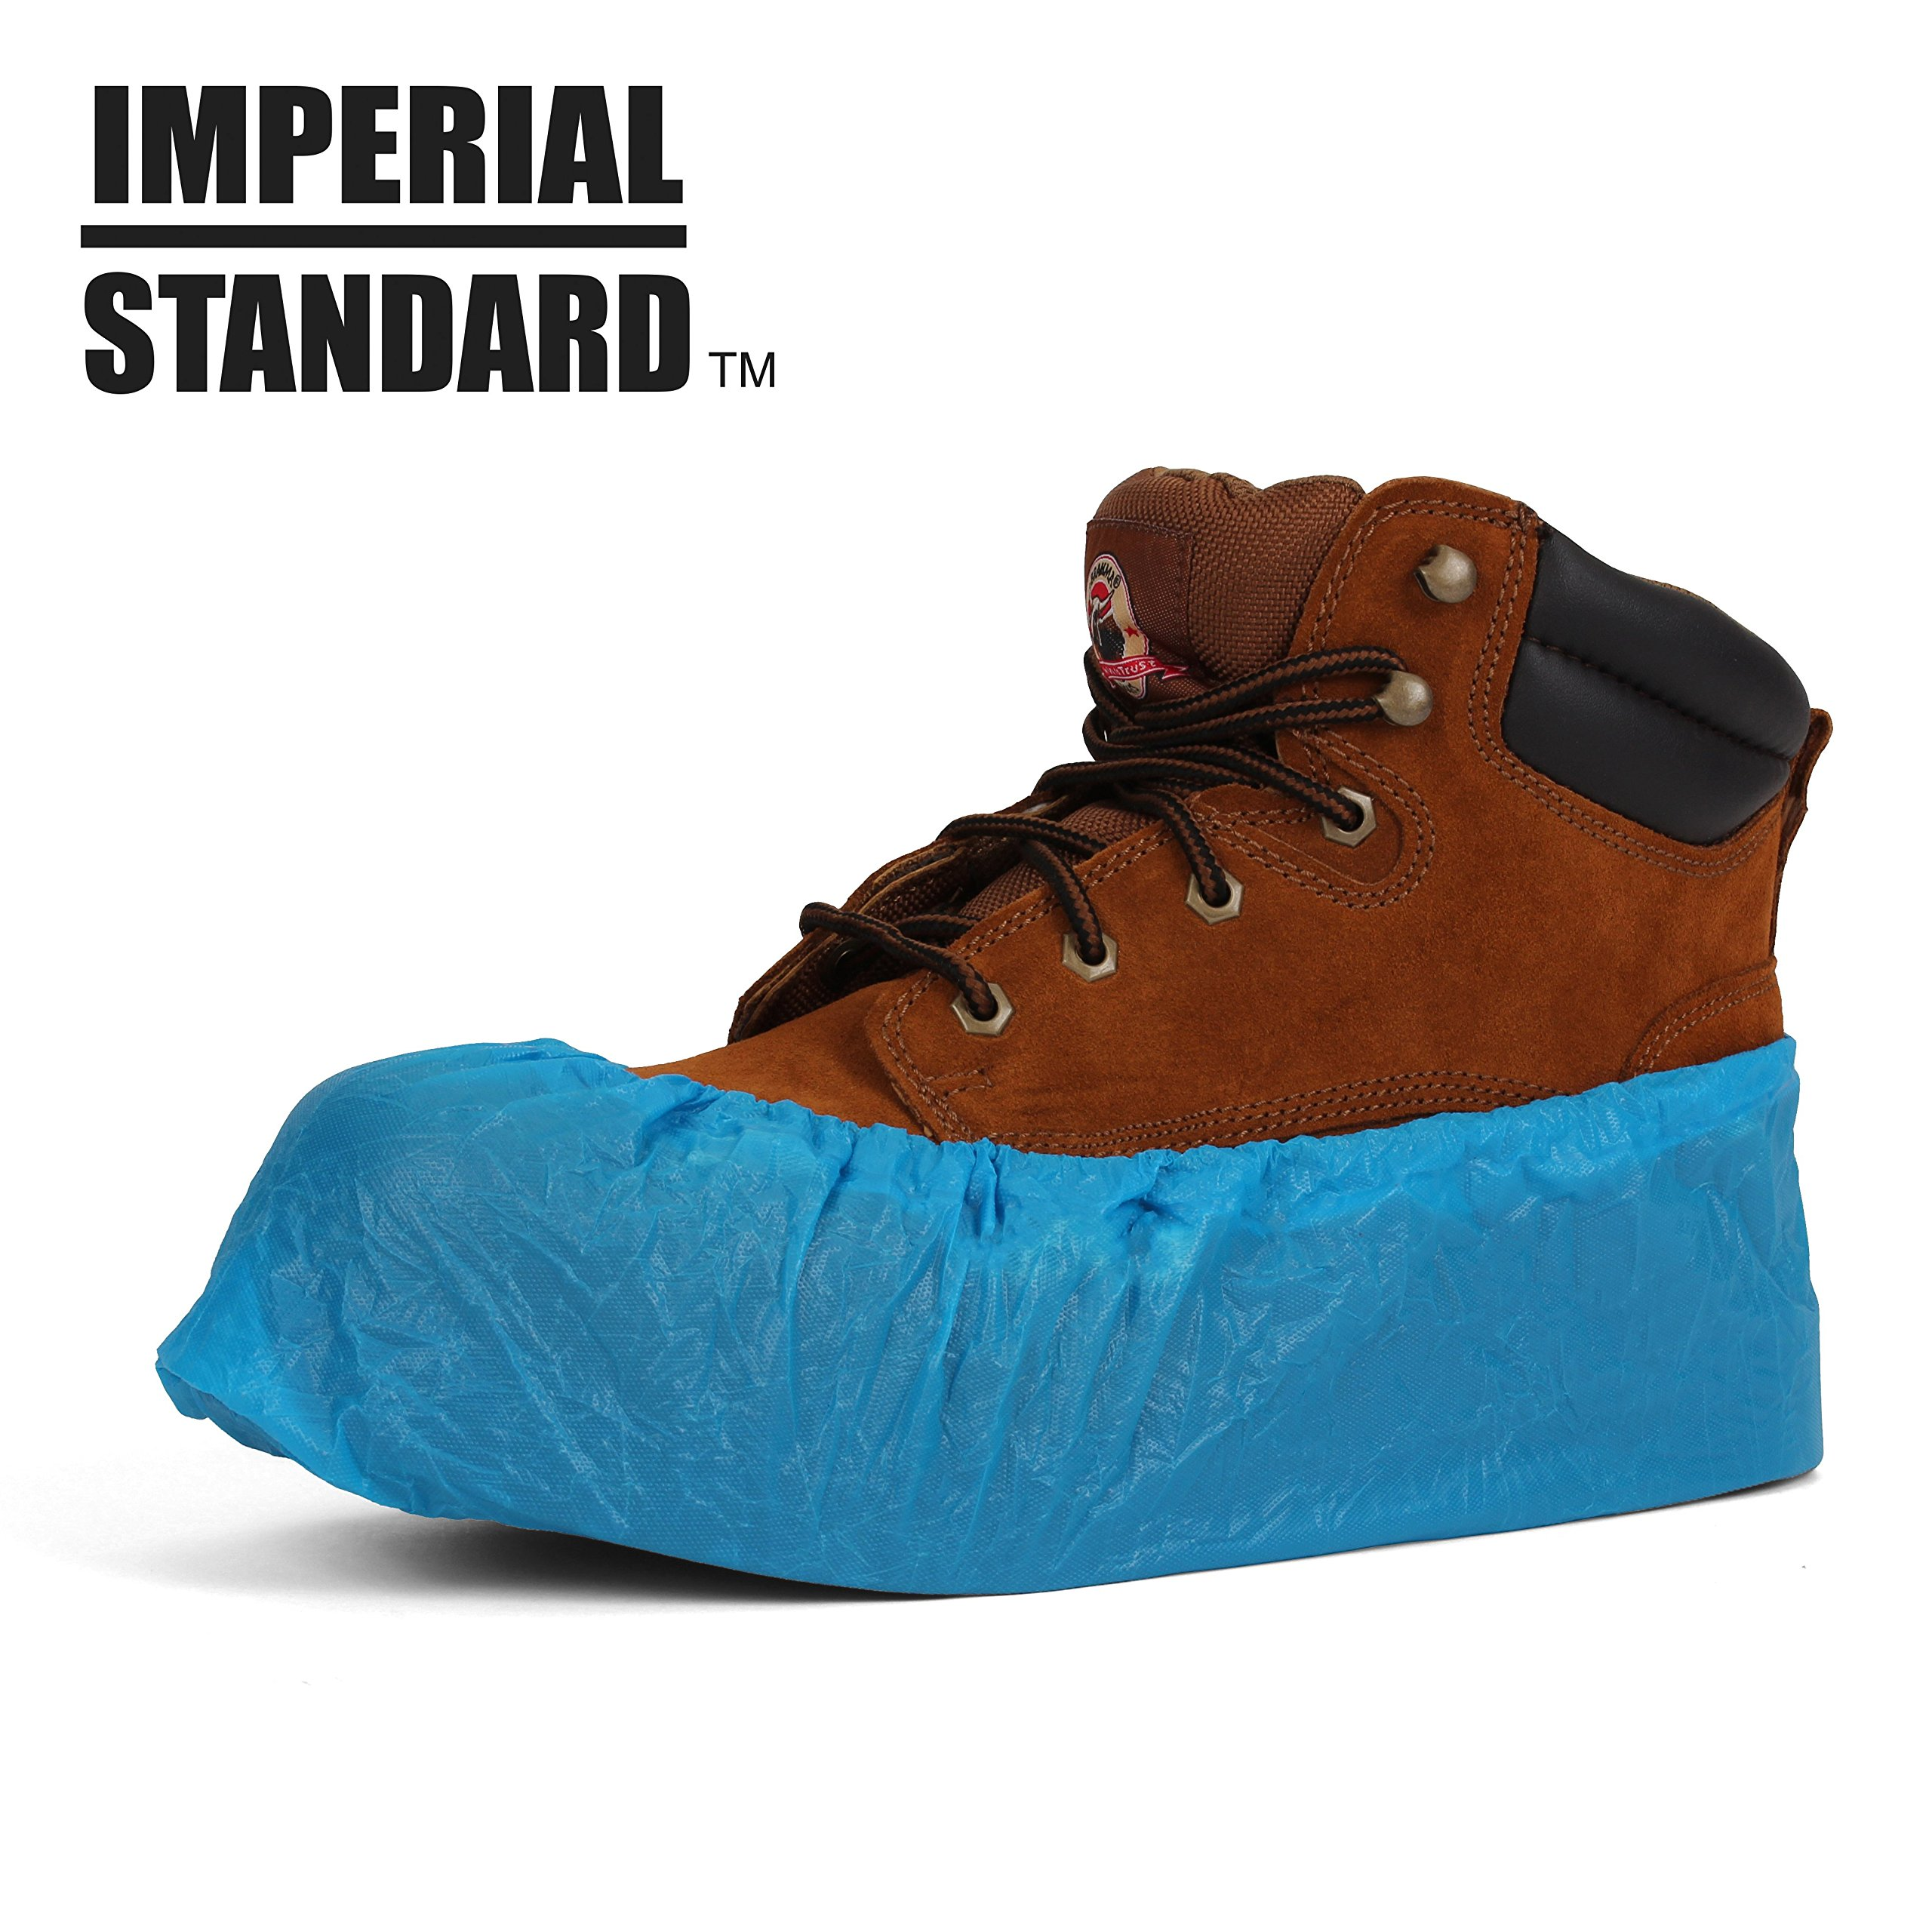 Waterproof Boot Covers for Professionals - XL Disposable Shoe Covers - Non-Slip Waterproof Shoe Protectors - Fits up to Size 13 Work Boot and Size 14 Shoe - (100 pack) by Imperial Standard (Image #2)